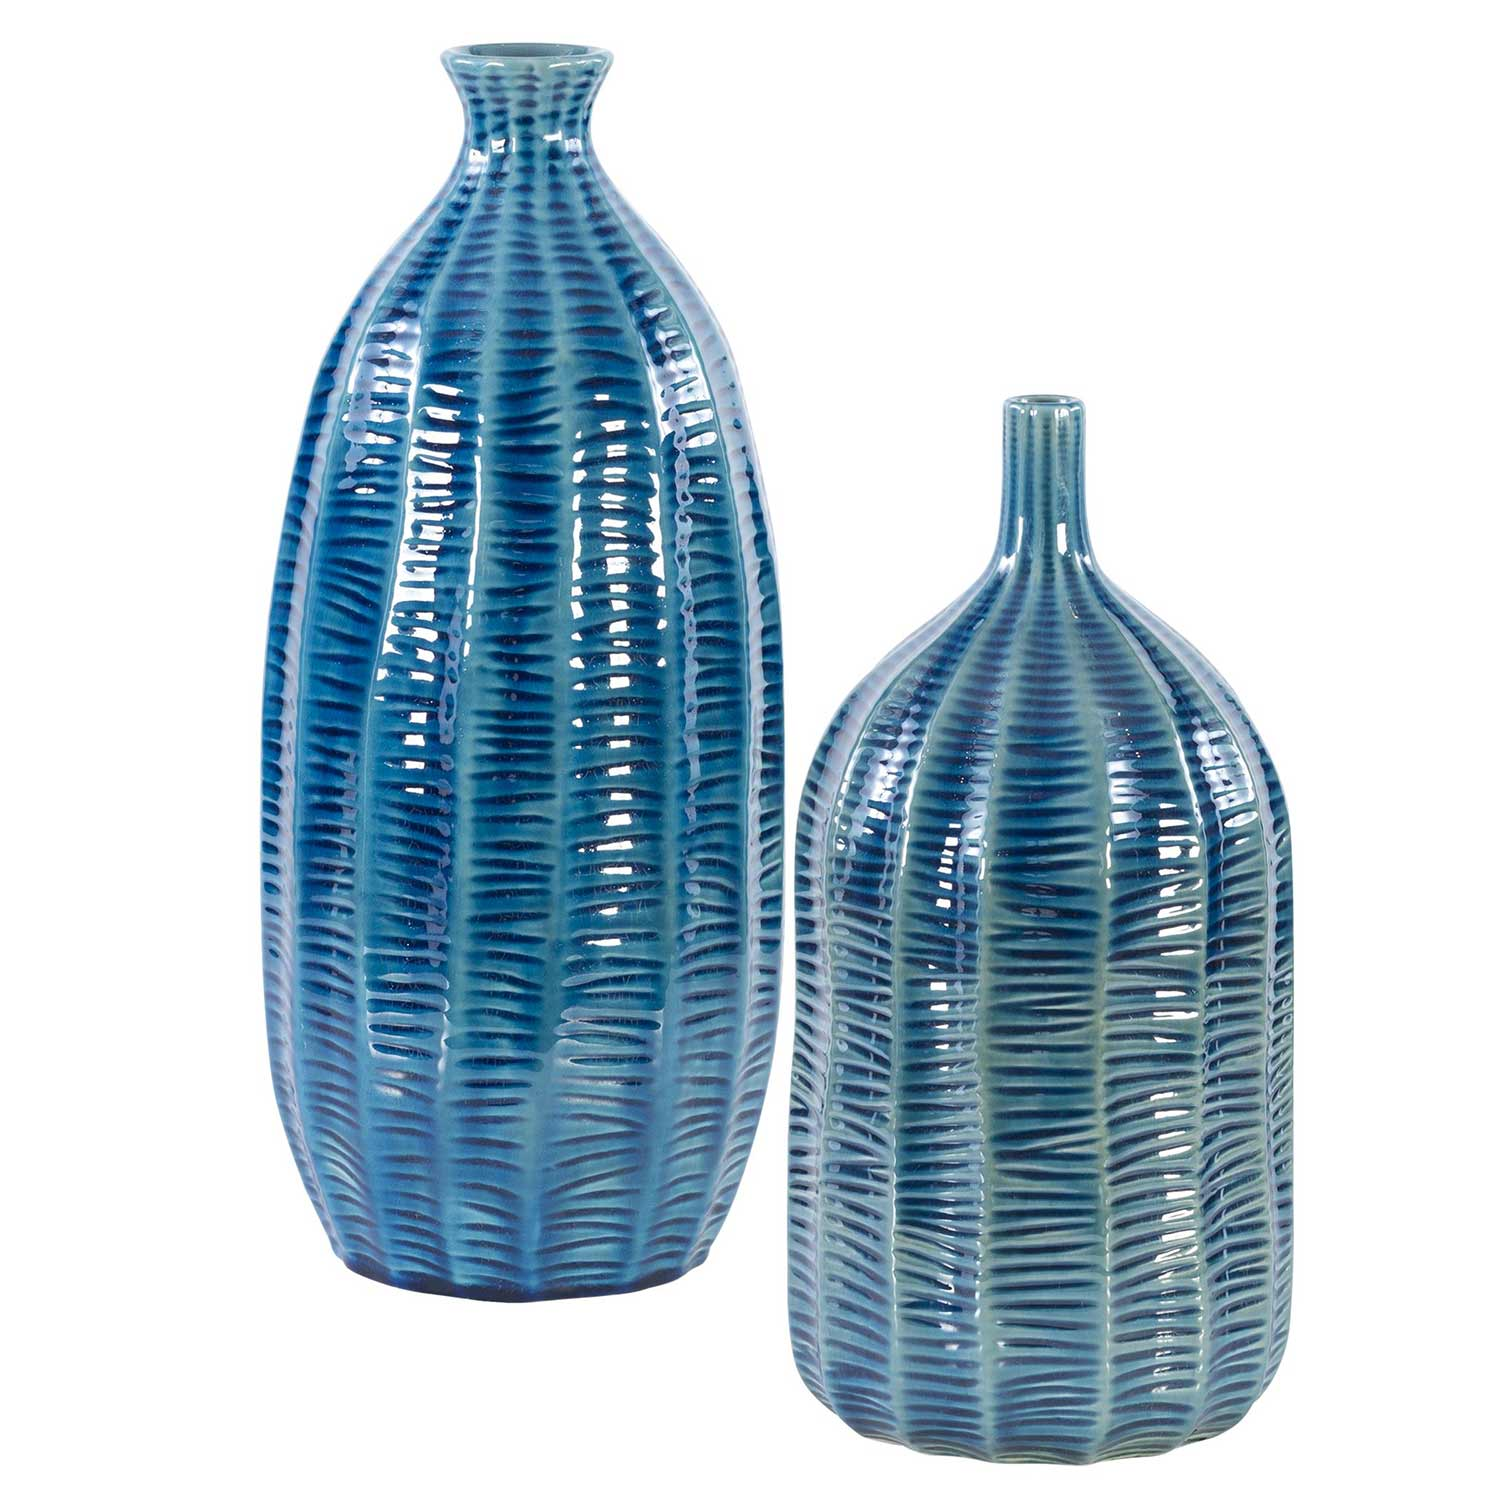 Uttermost Bixby Vases - Set of 2 - Blue